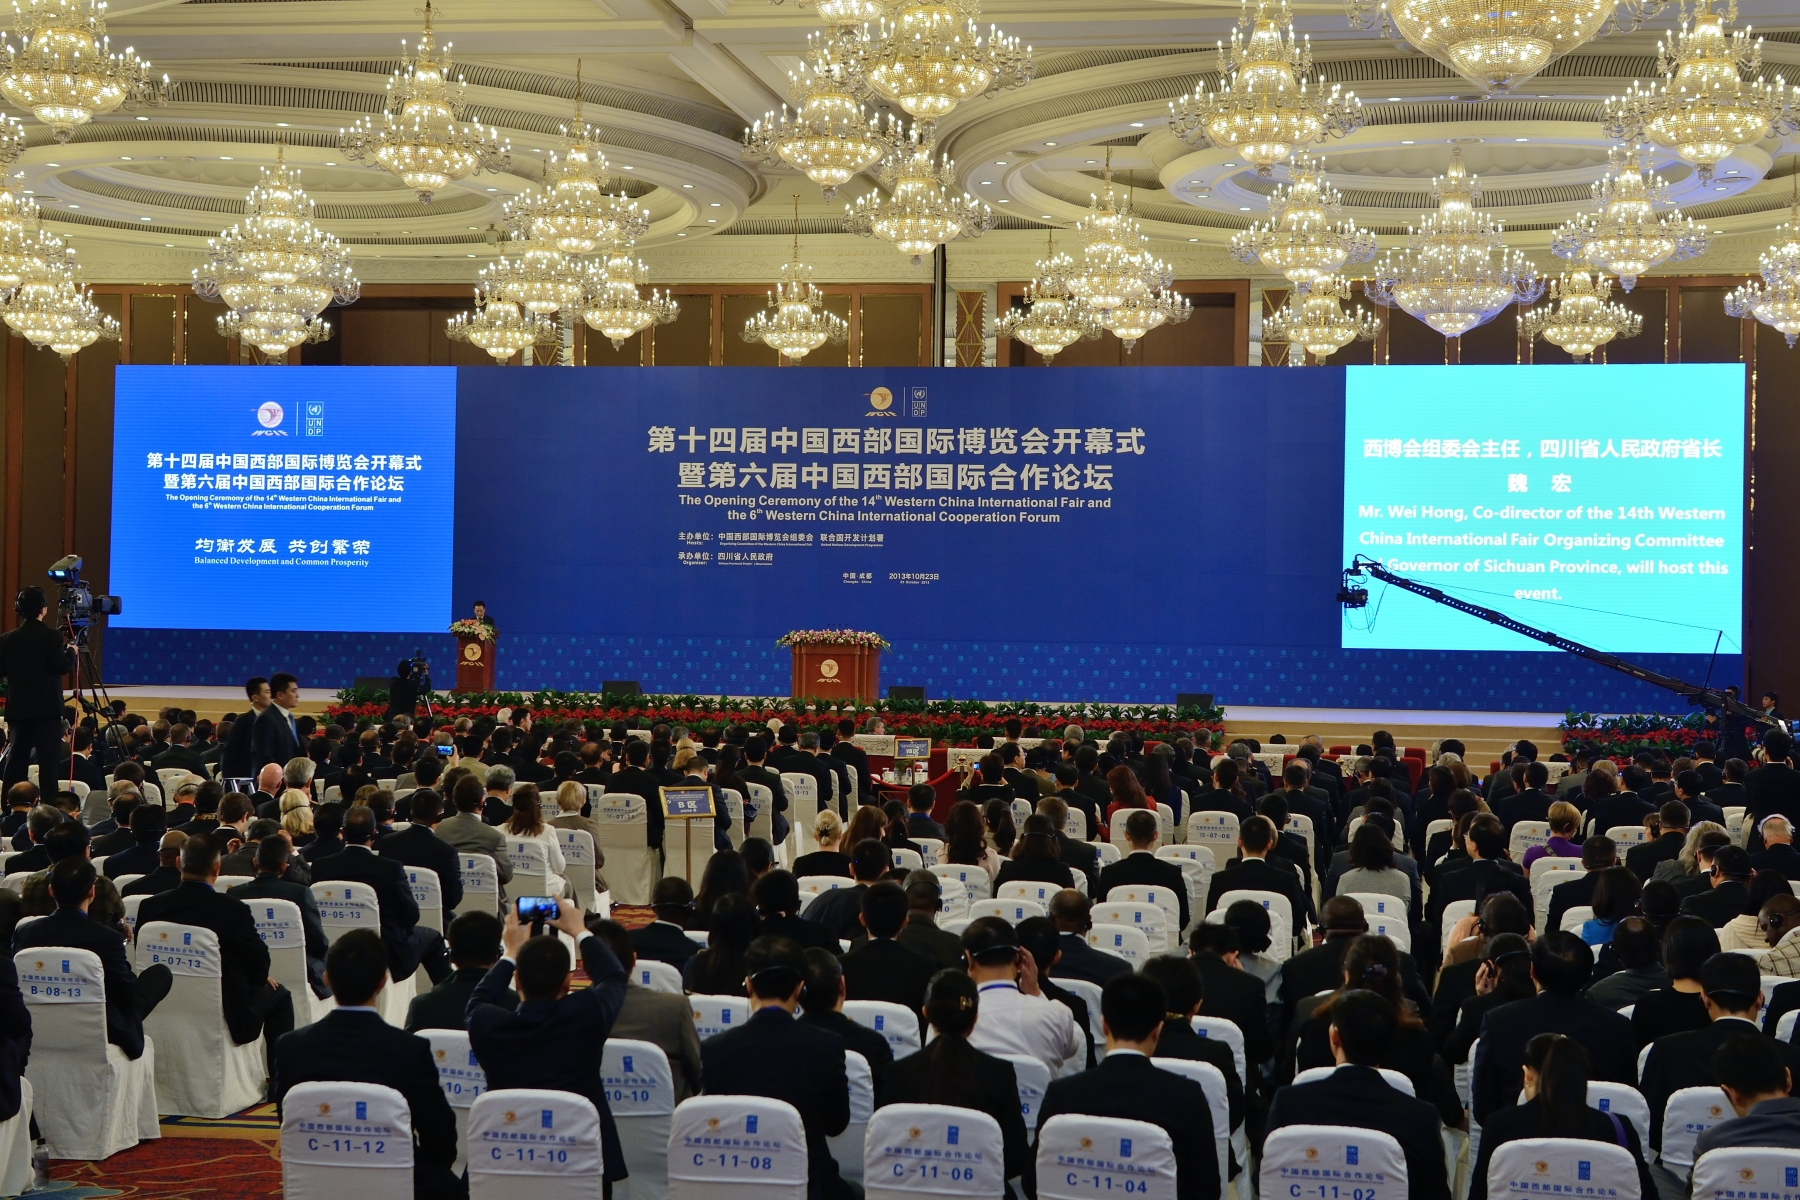 The forum is a venue for China's Vice-Premier and other international leaders to exchange opinions on the theme of 'Balanced development and common prosperity.'